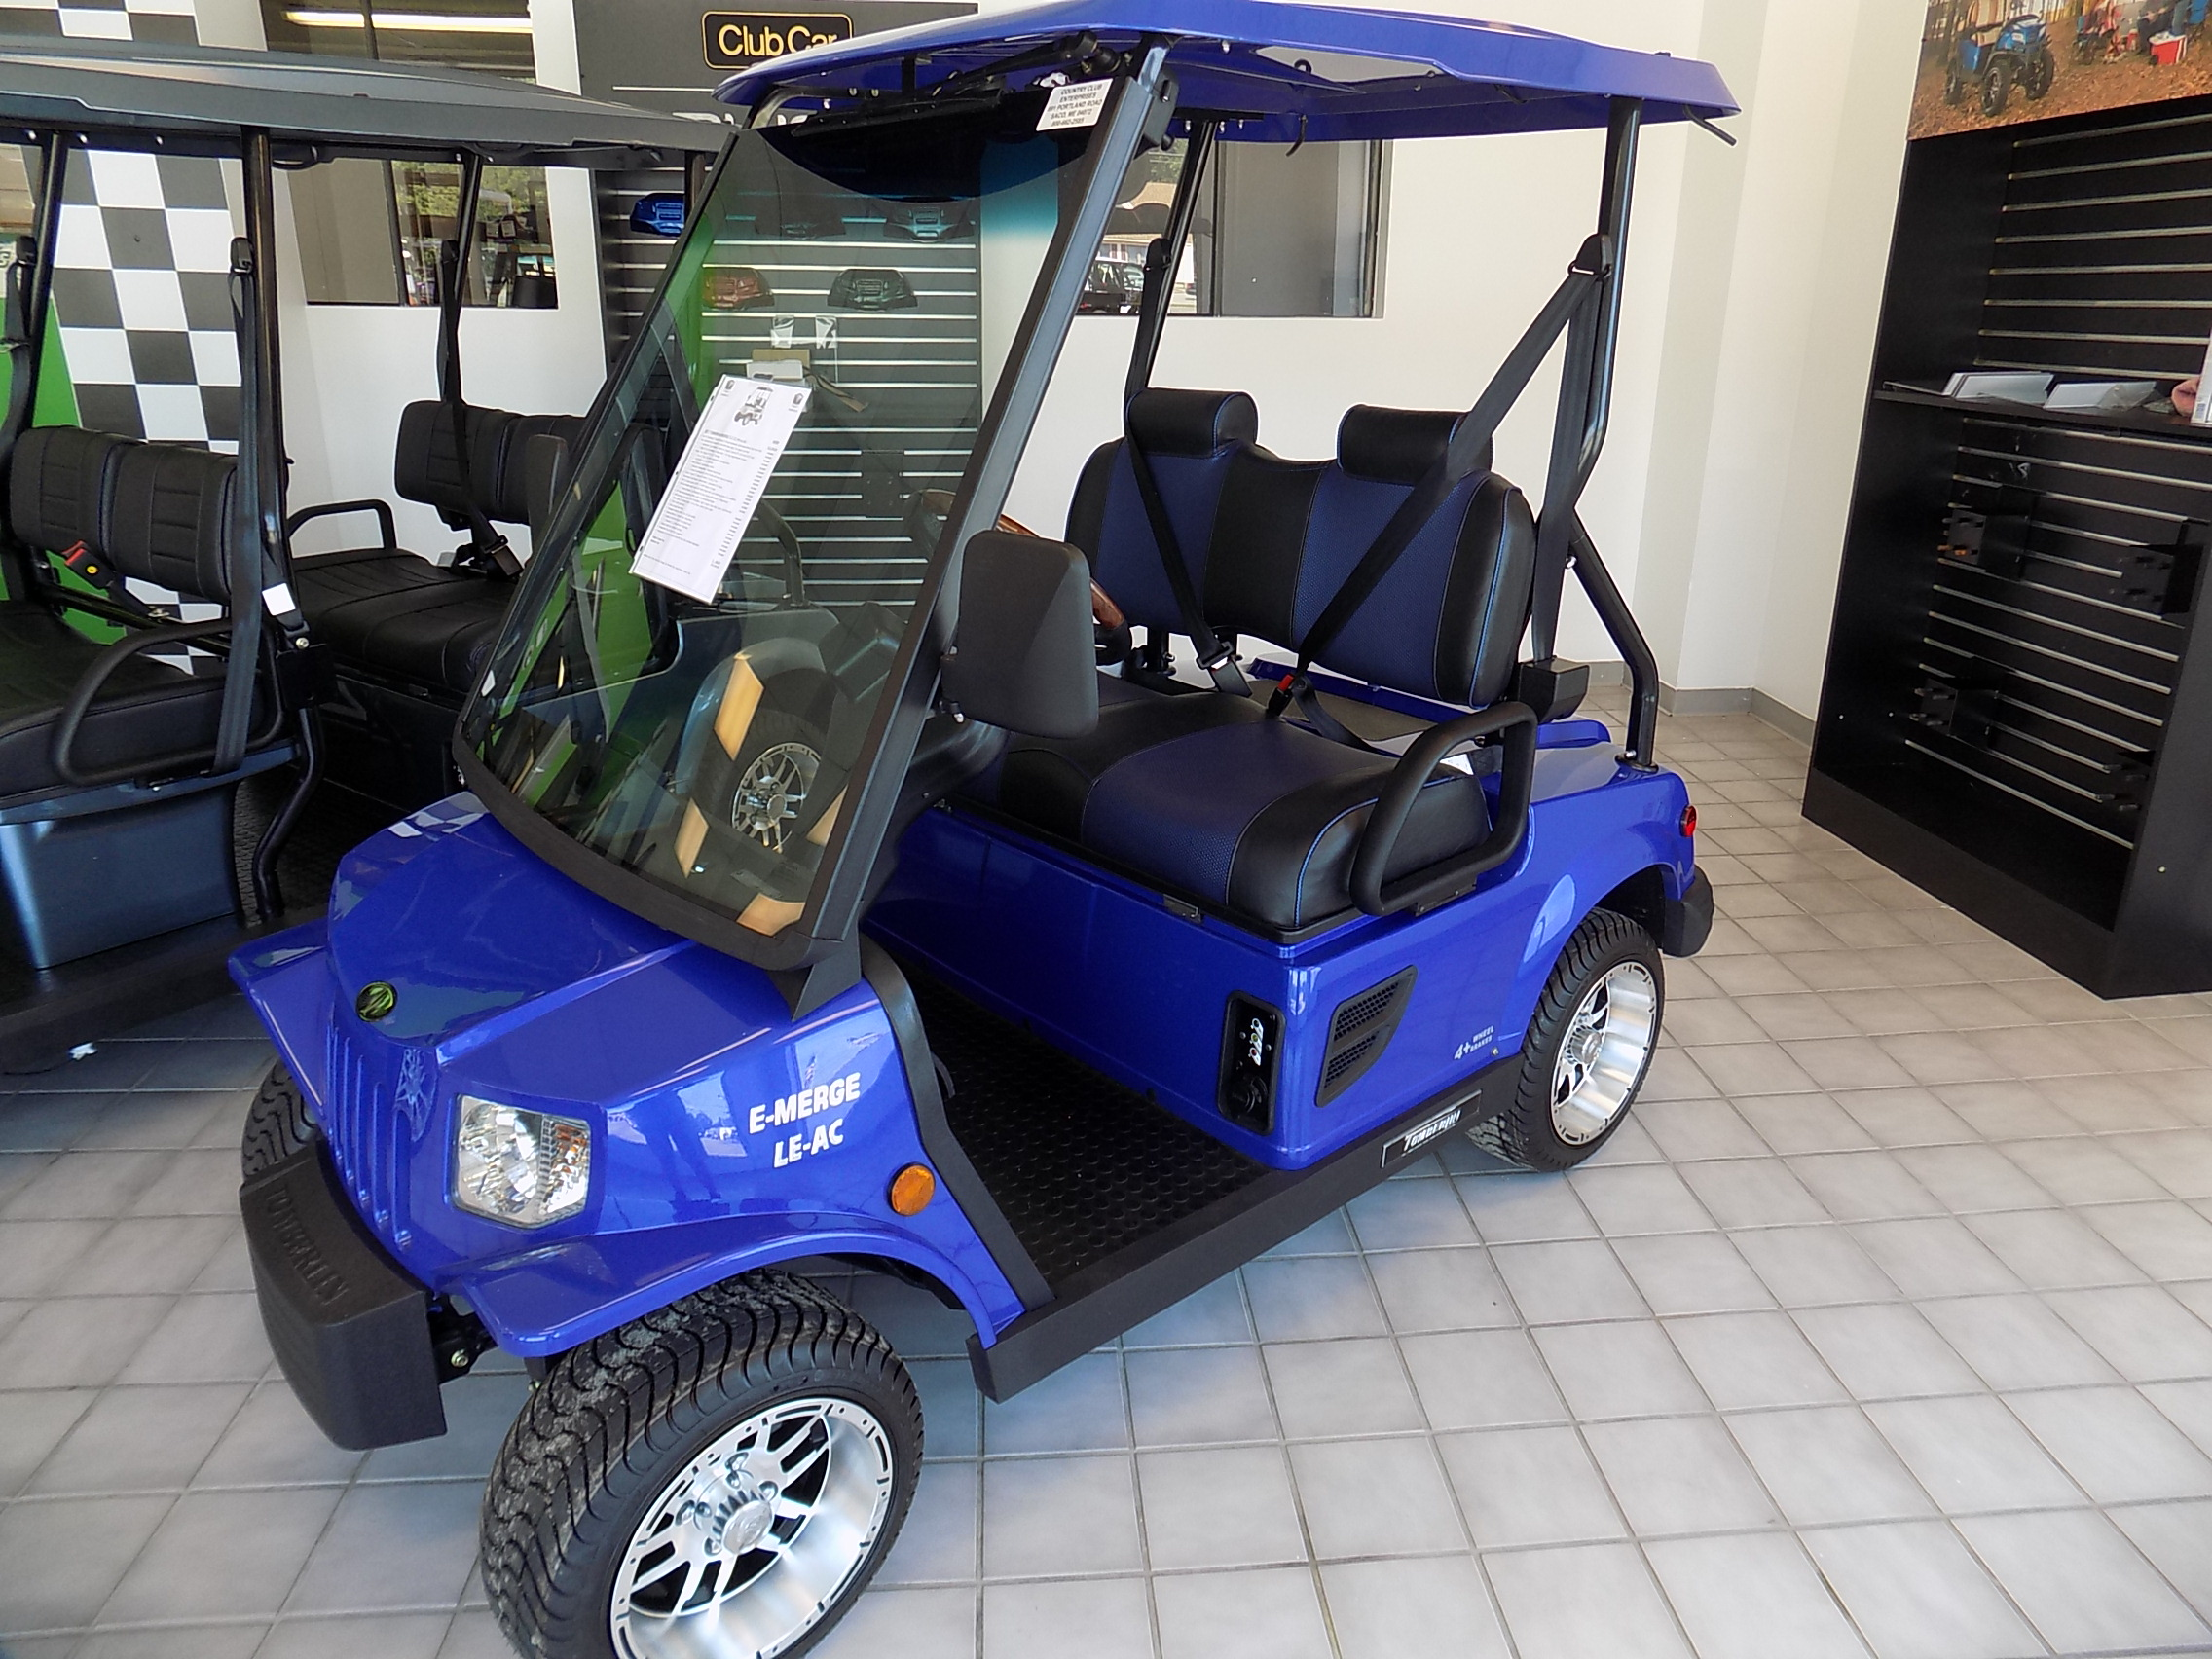 hight resolution of new 2017 street legal tomberlin emerge e2 le lsv with full new car warranty cce golf cars